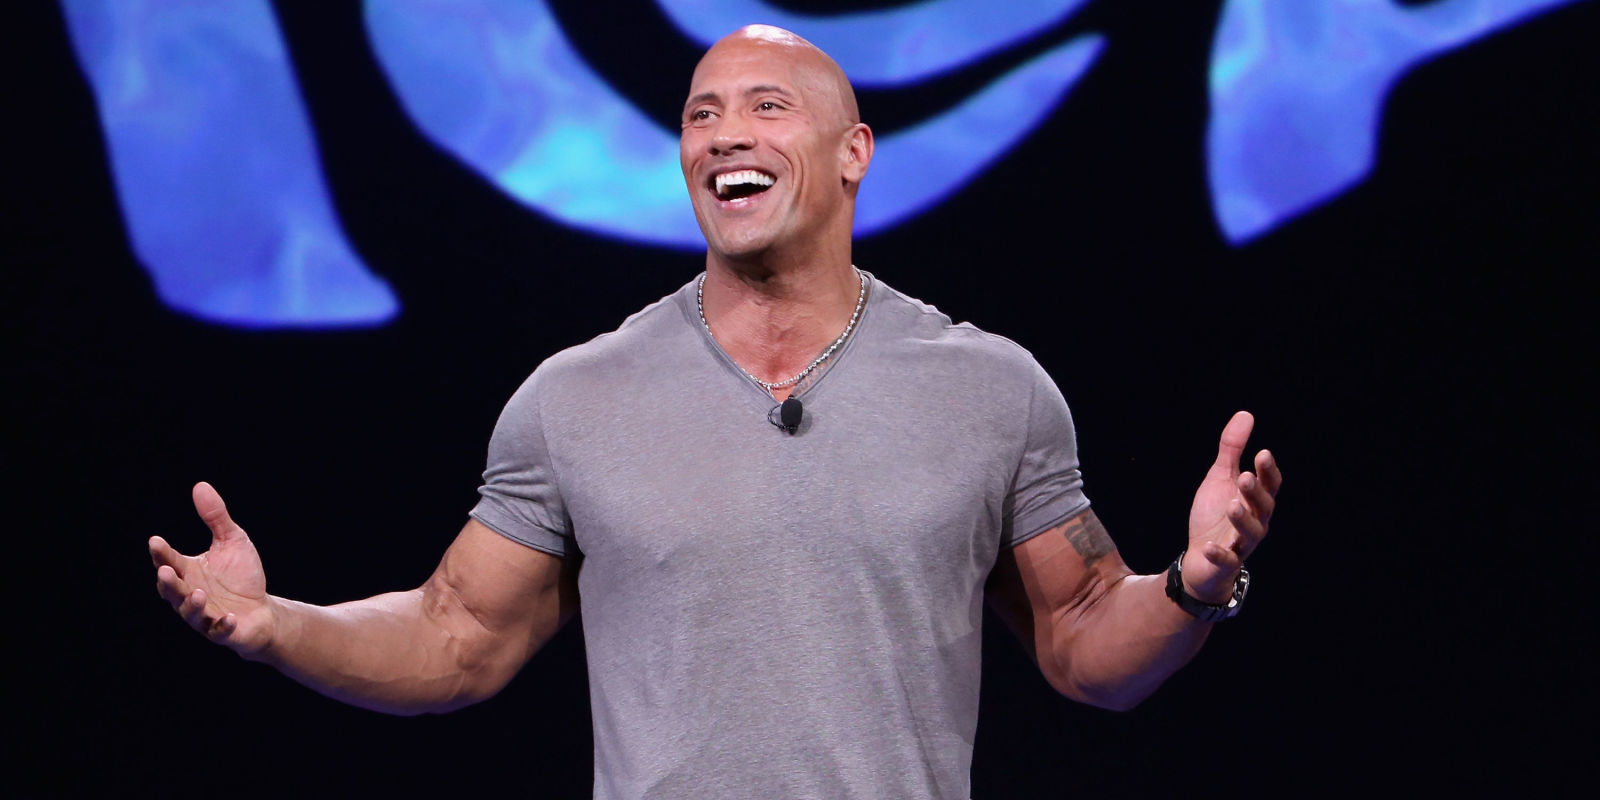 Dwayne Johnson is serious about running for president